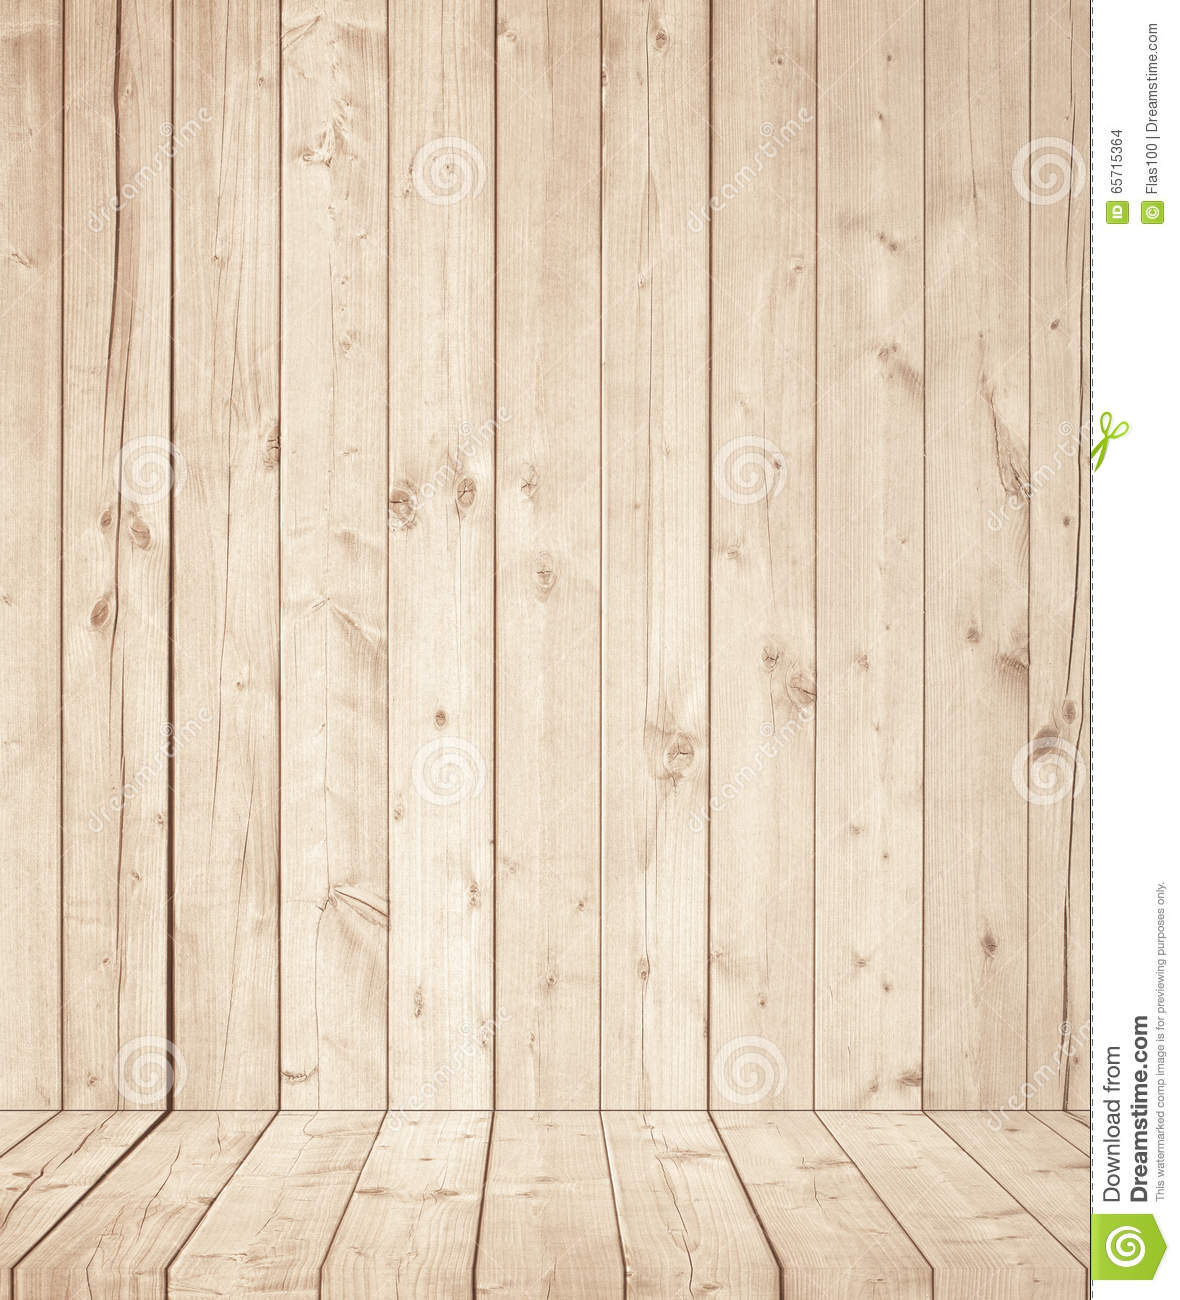 Light Brown Wooden Wall Texture With Old Pine Fir Floor